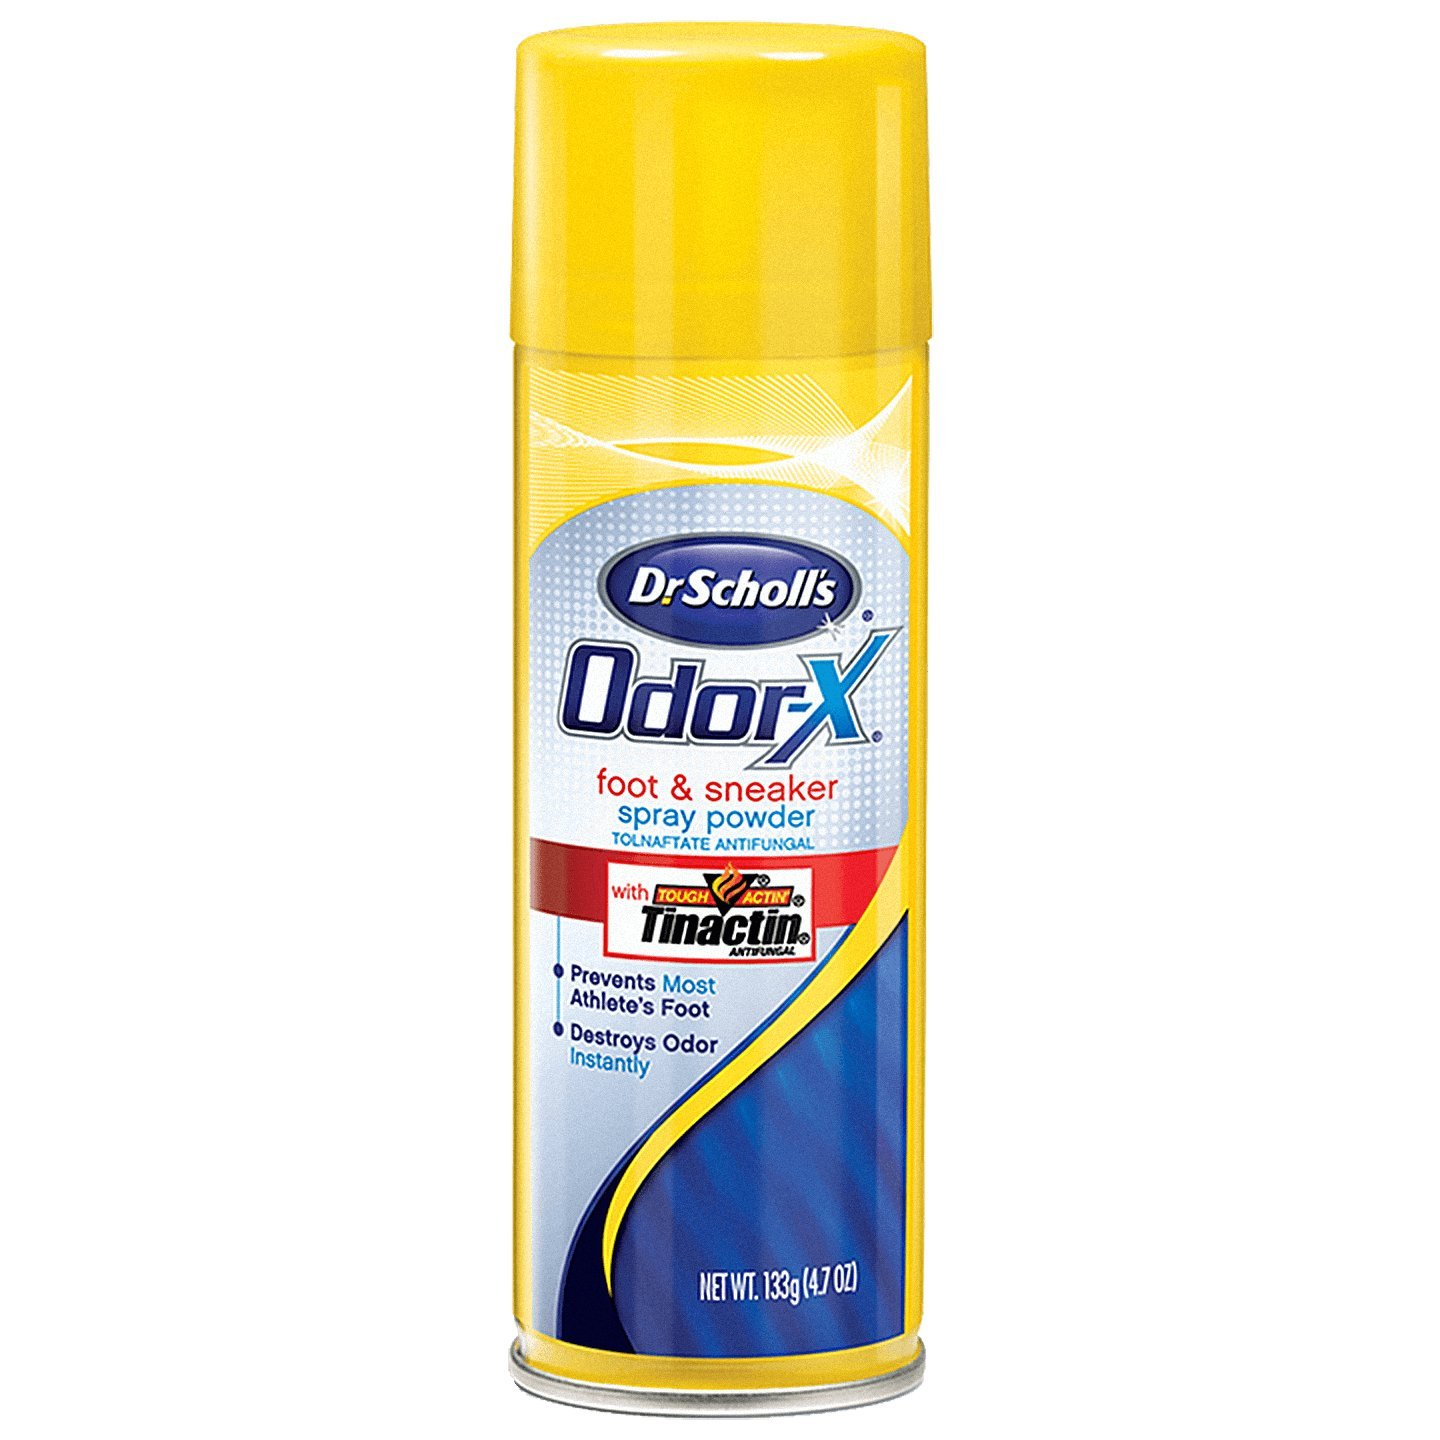 Dr. Scholl's Odor Destroy Deodorant Sport Foot Spray, 3 Count